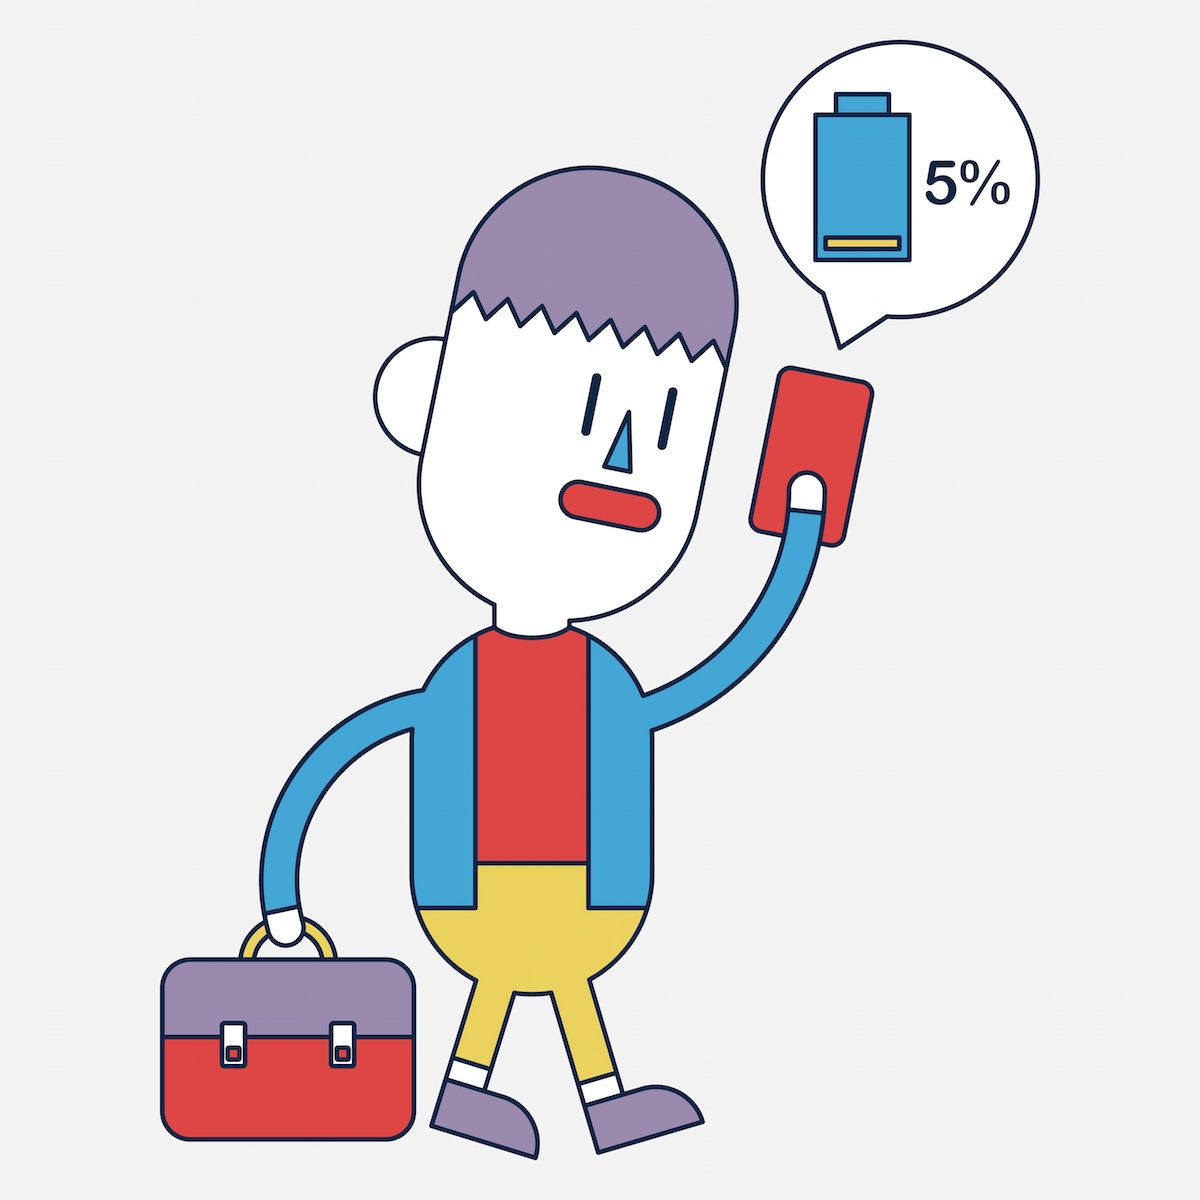 Character illustration design. Businessman cellphone out of charge cartoon,eps